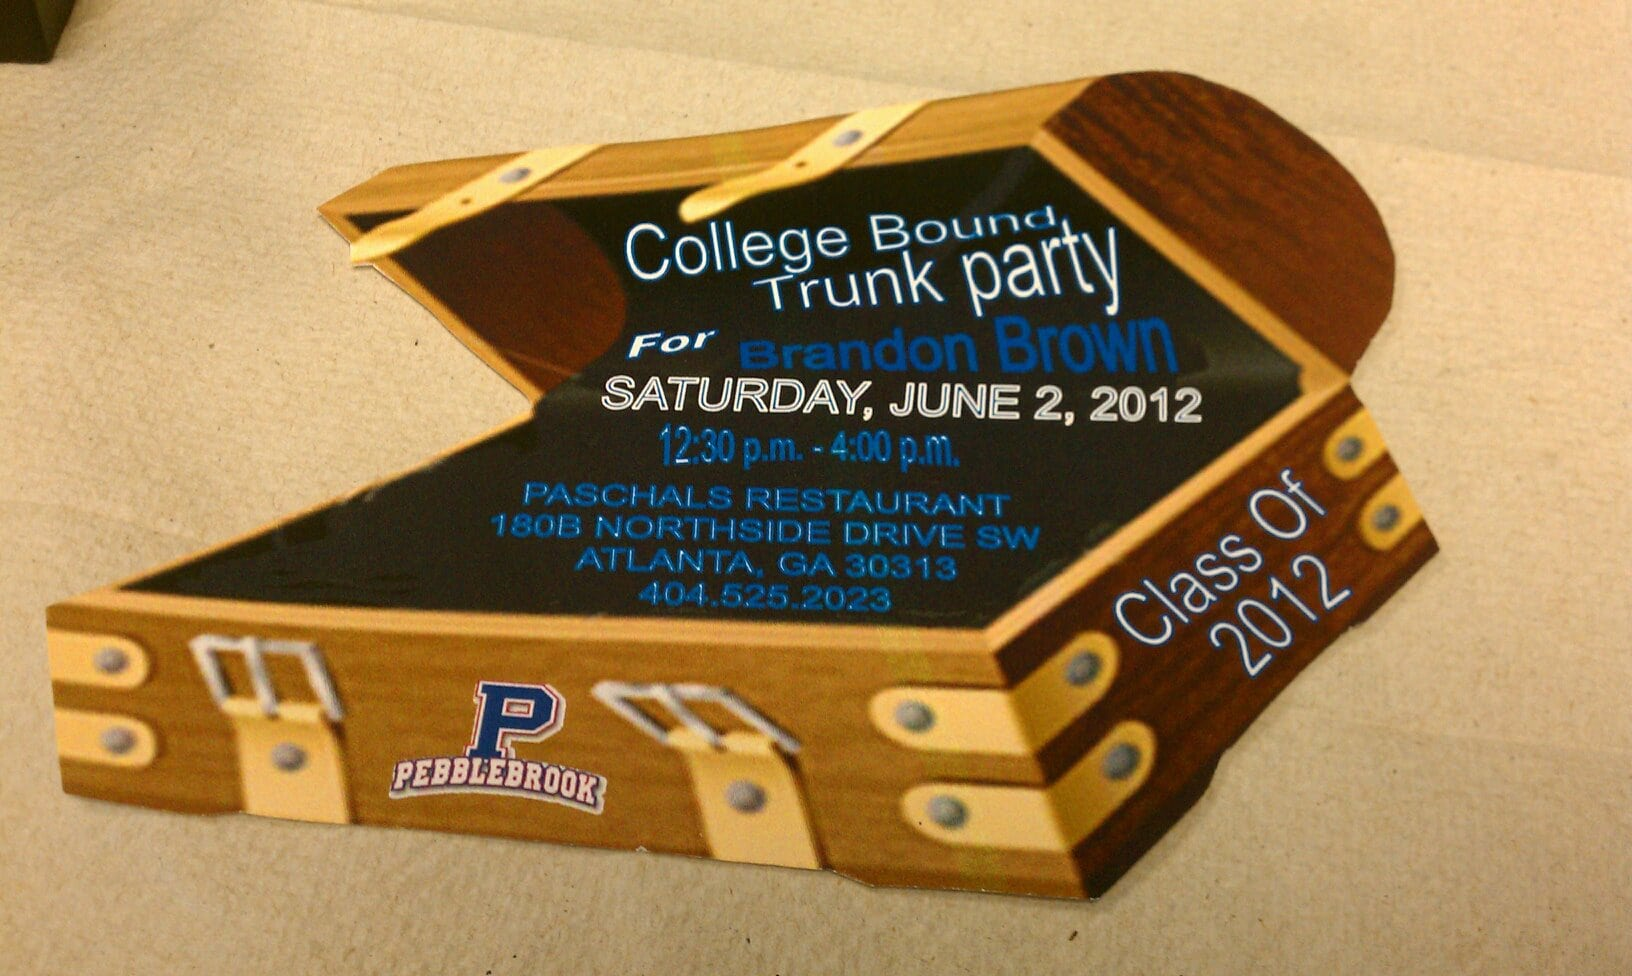 College Bound Trunk Party Invitation